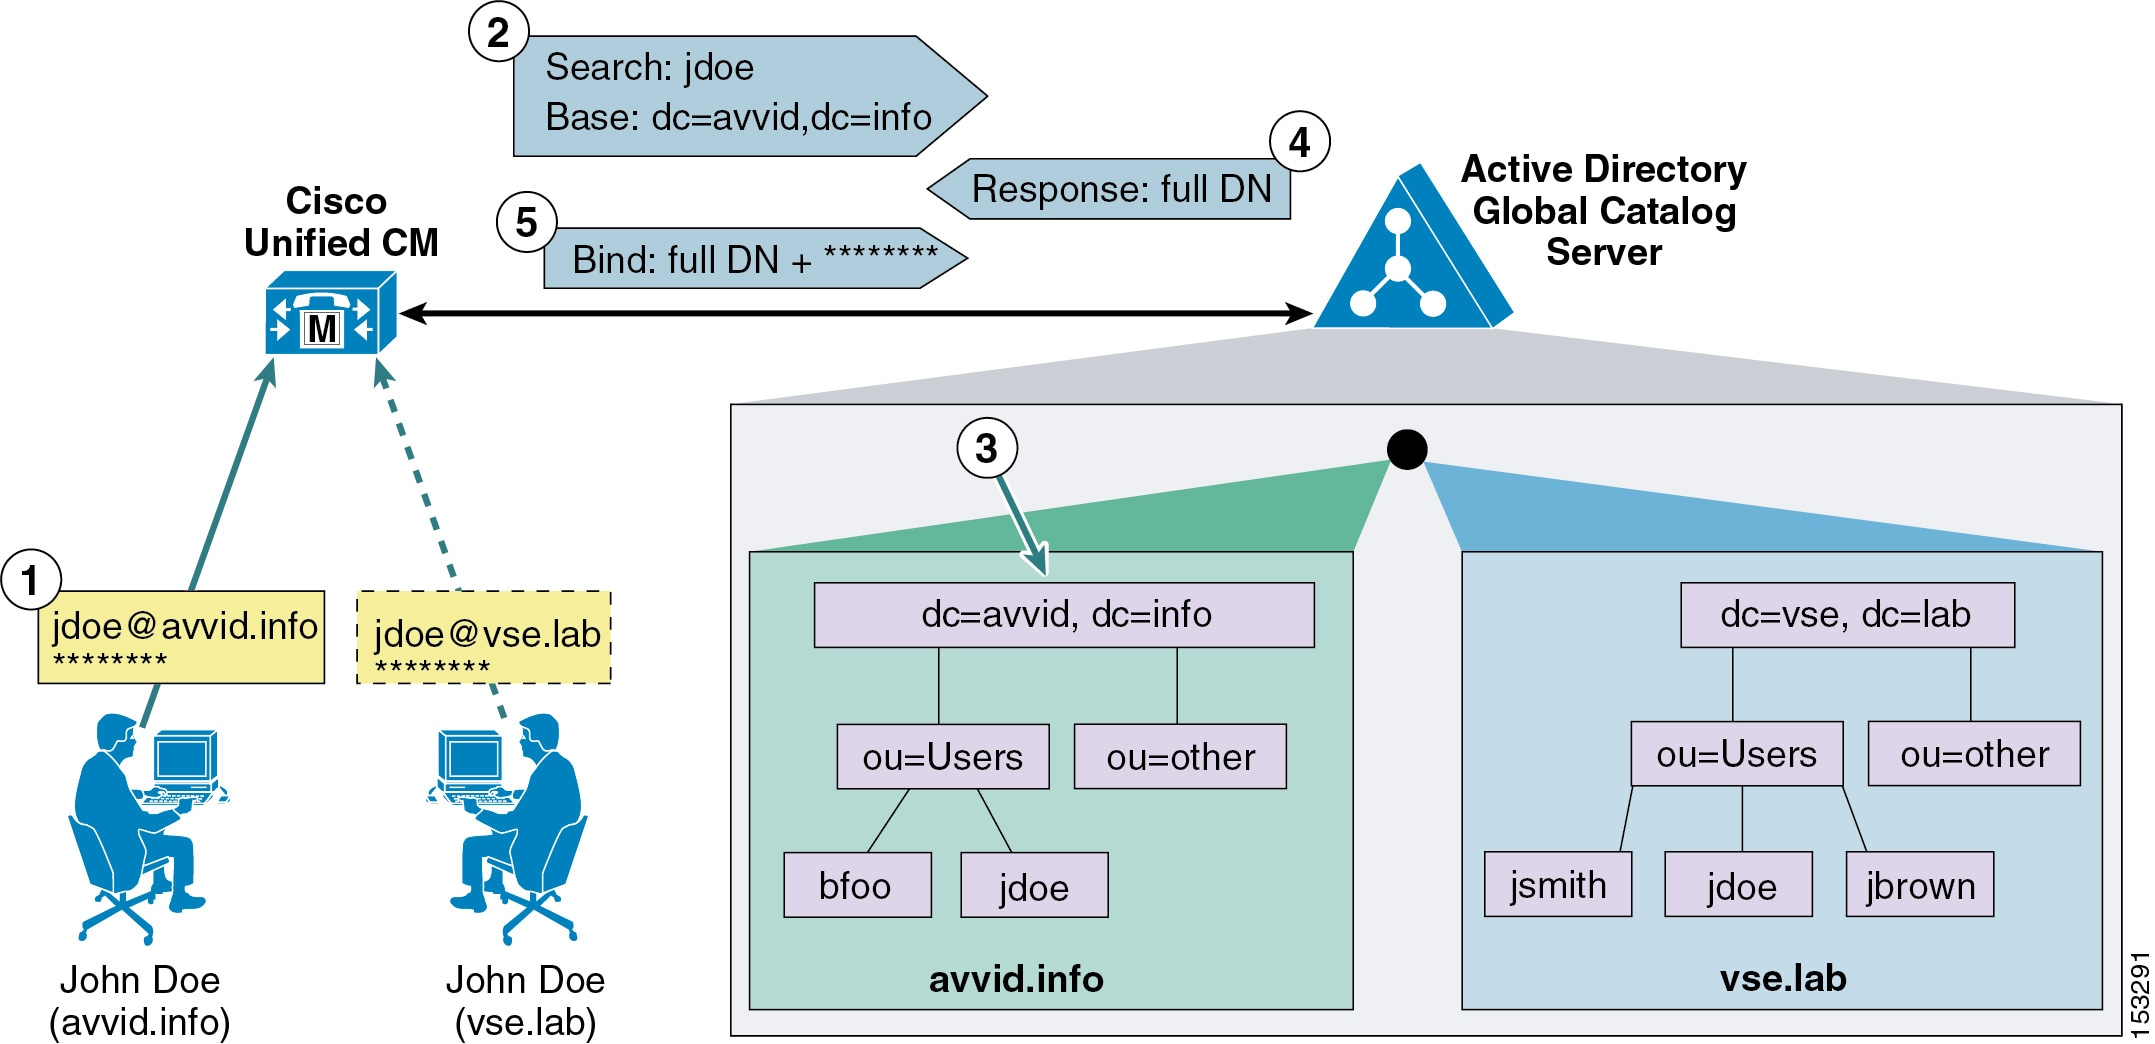 Cisco collaboration system 10x solution reference network designs as shown in figure 16 14 a user named john doe exists in both the avvidfo tree and the vseb tree the following steps illustrate the authentication maxwellsz